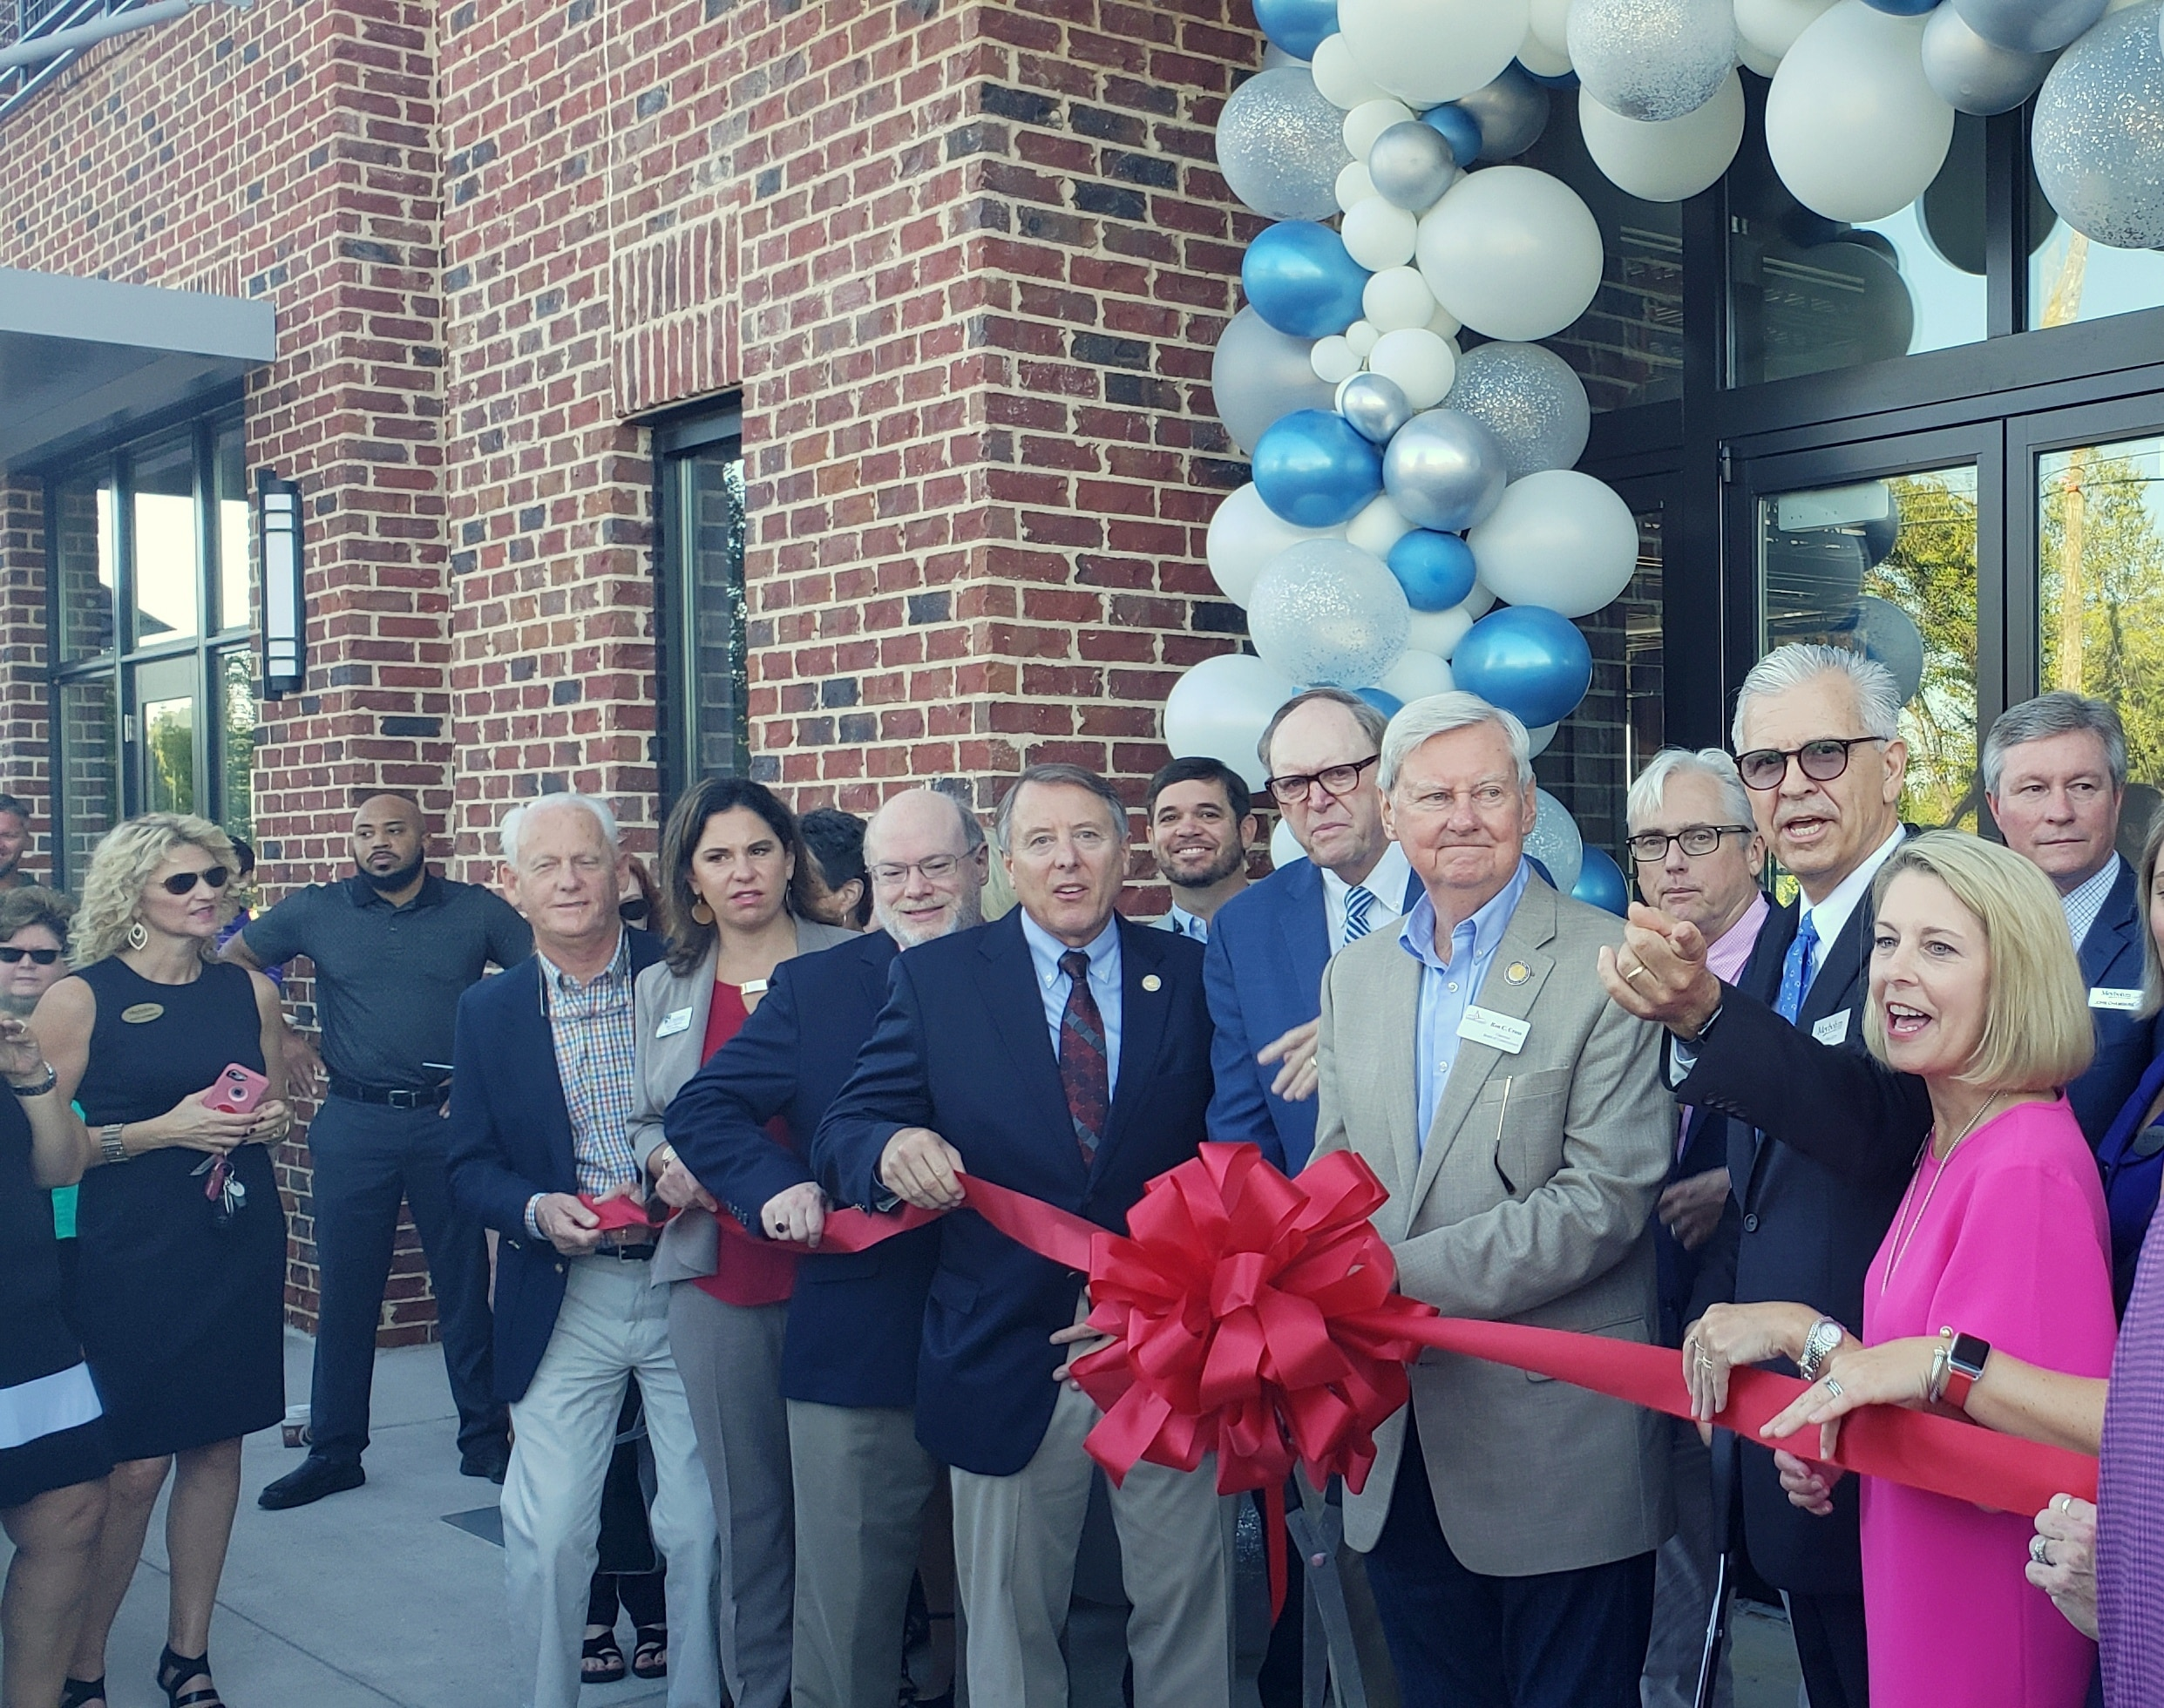 TSW TSW-Meybohm-Building-Ribbon-Cutting-2018 Meybohm Building Ribbon-Cutting Architecture In The News Landscape Architecture  ribbon-cutting The Plaza at Evans Towne Center Columbia County Meybohm   TSW